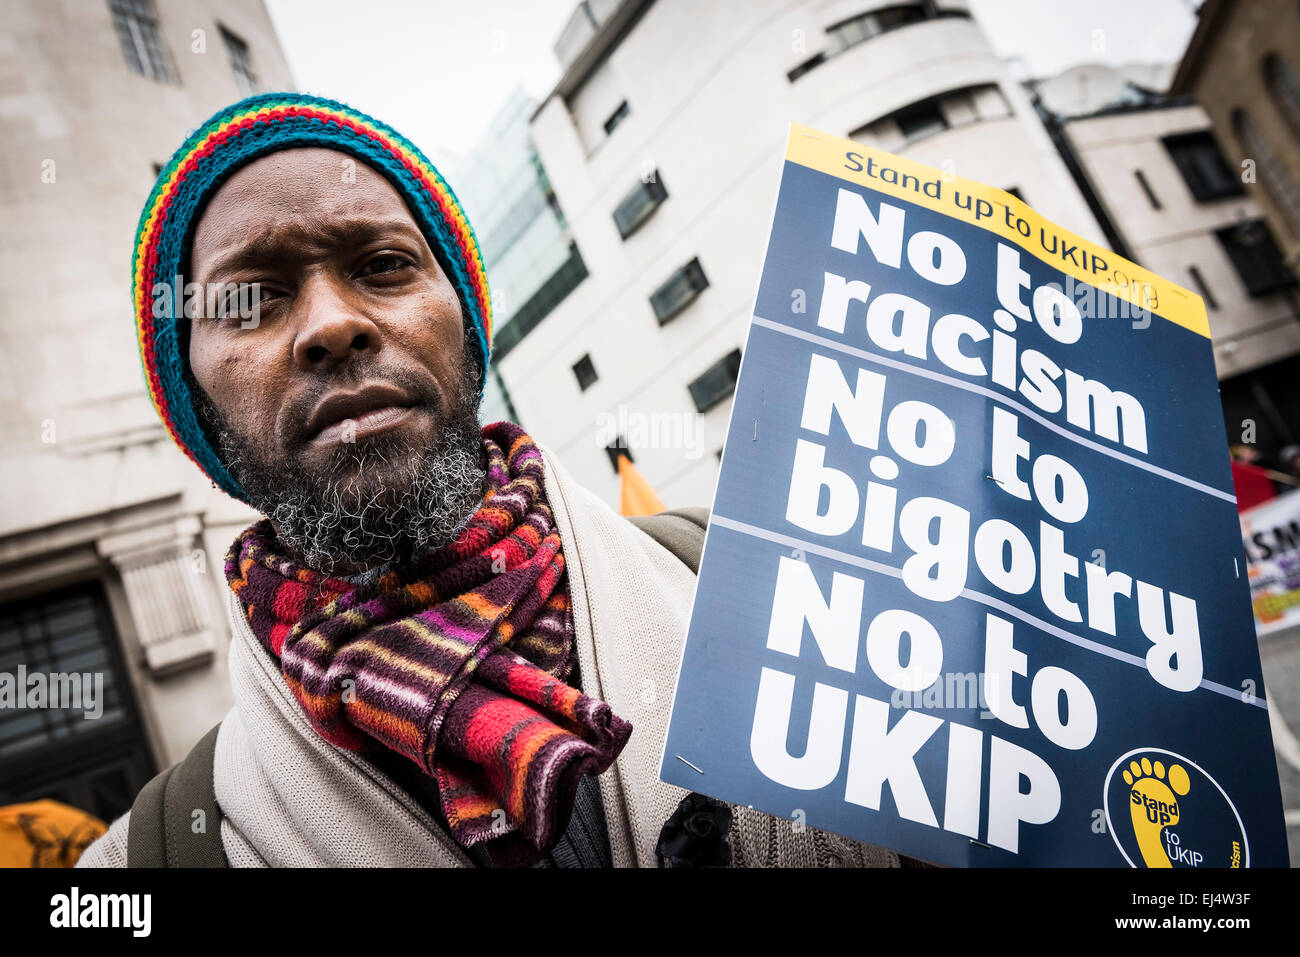 Saturday 21st March, 2015. London. Adolfo from London participates in the Stand Up To Racism demo in London today. - Stock Image